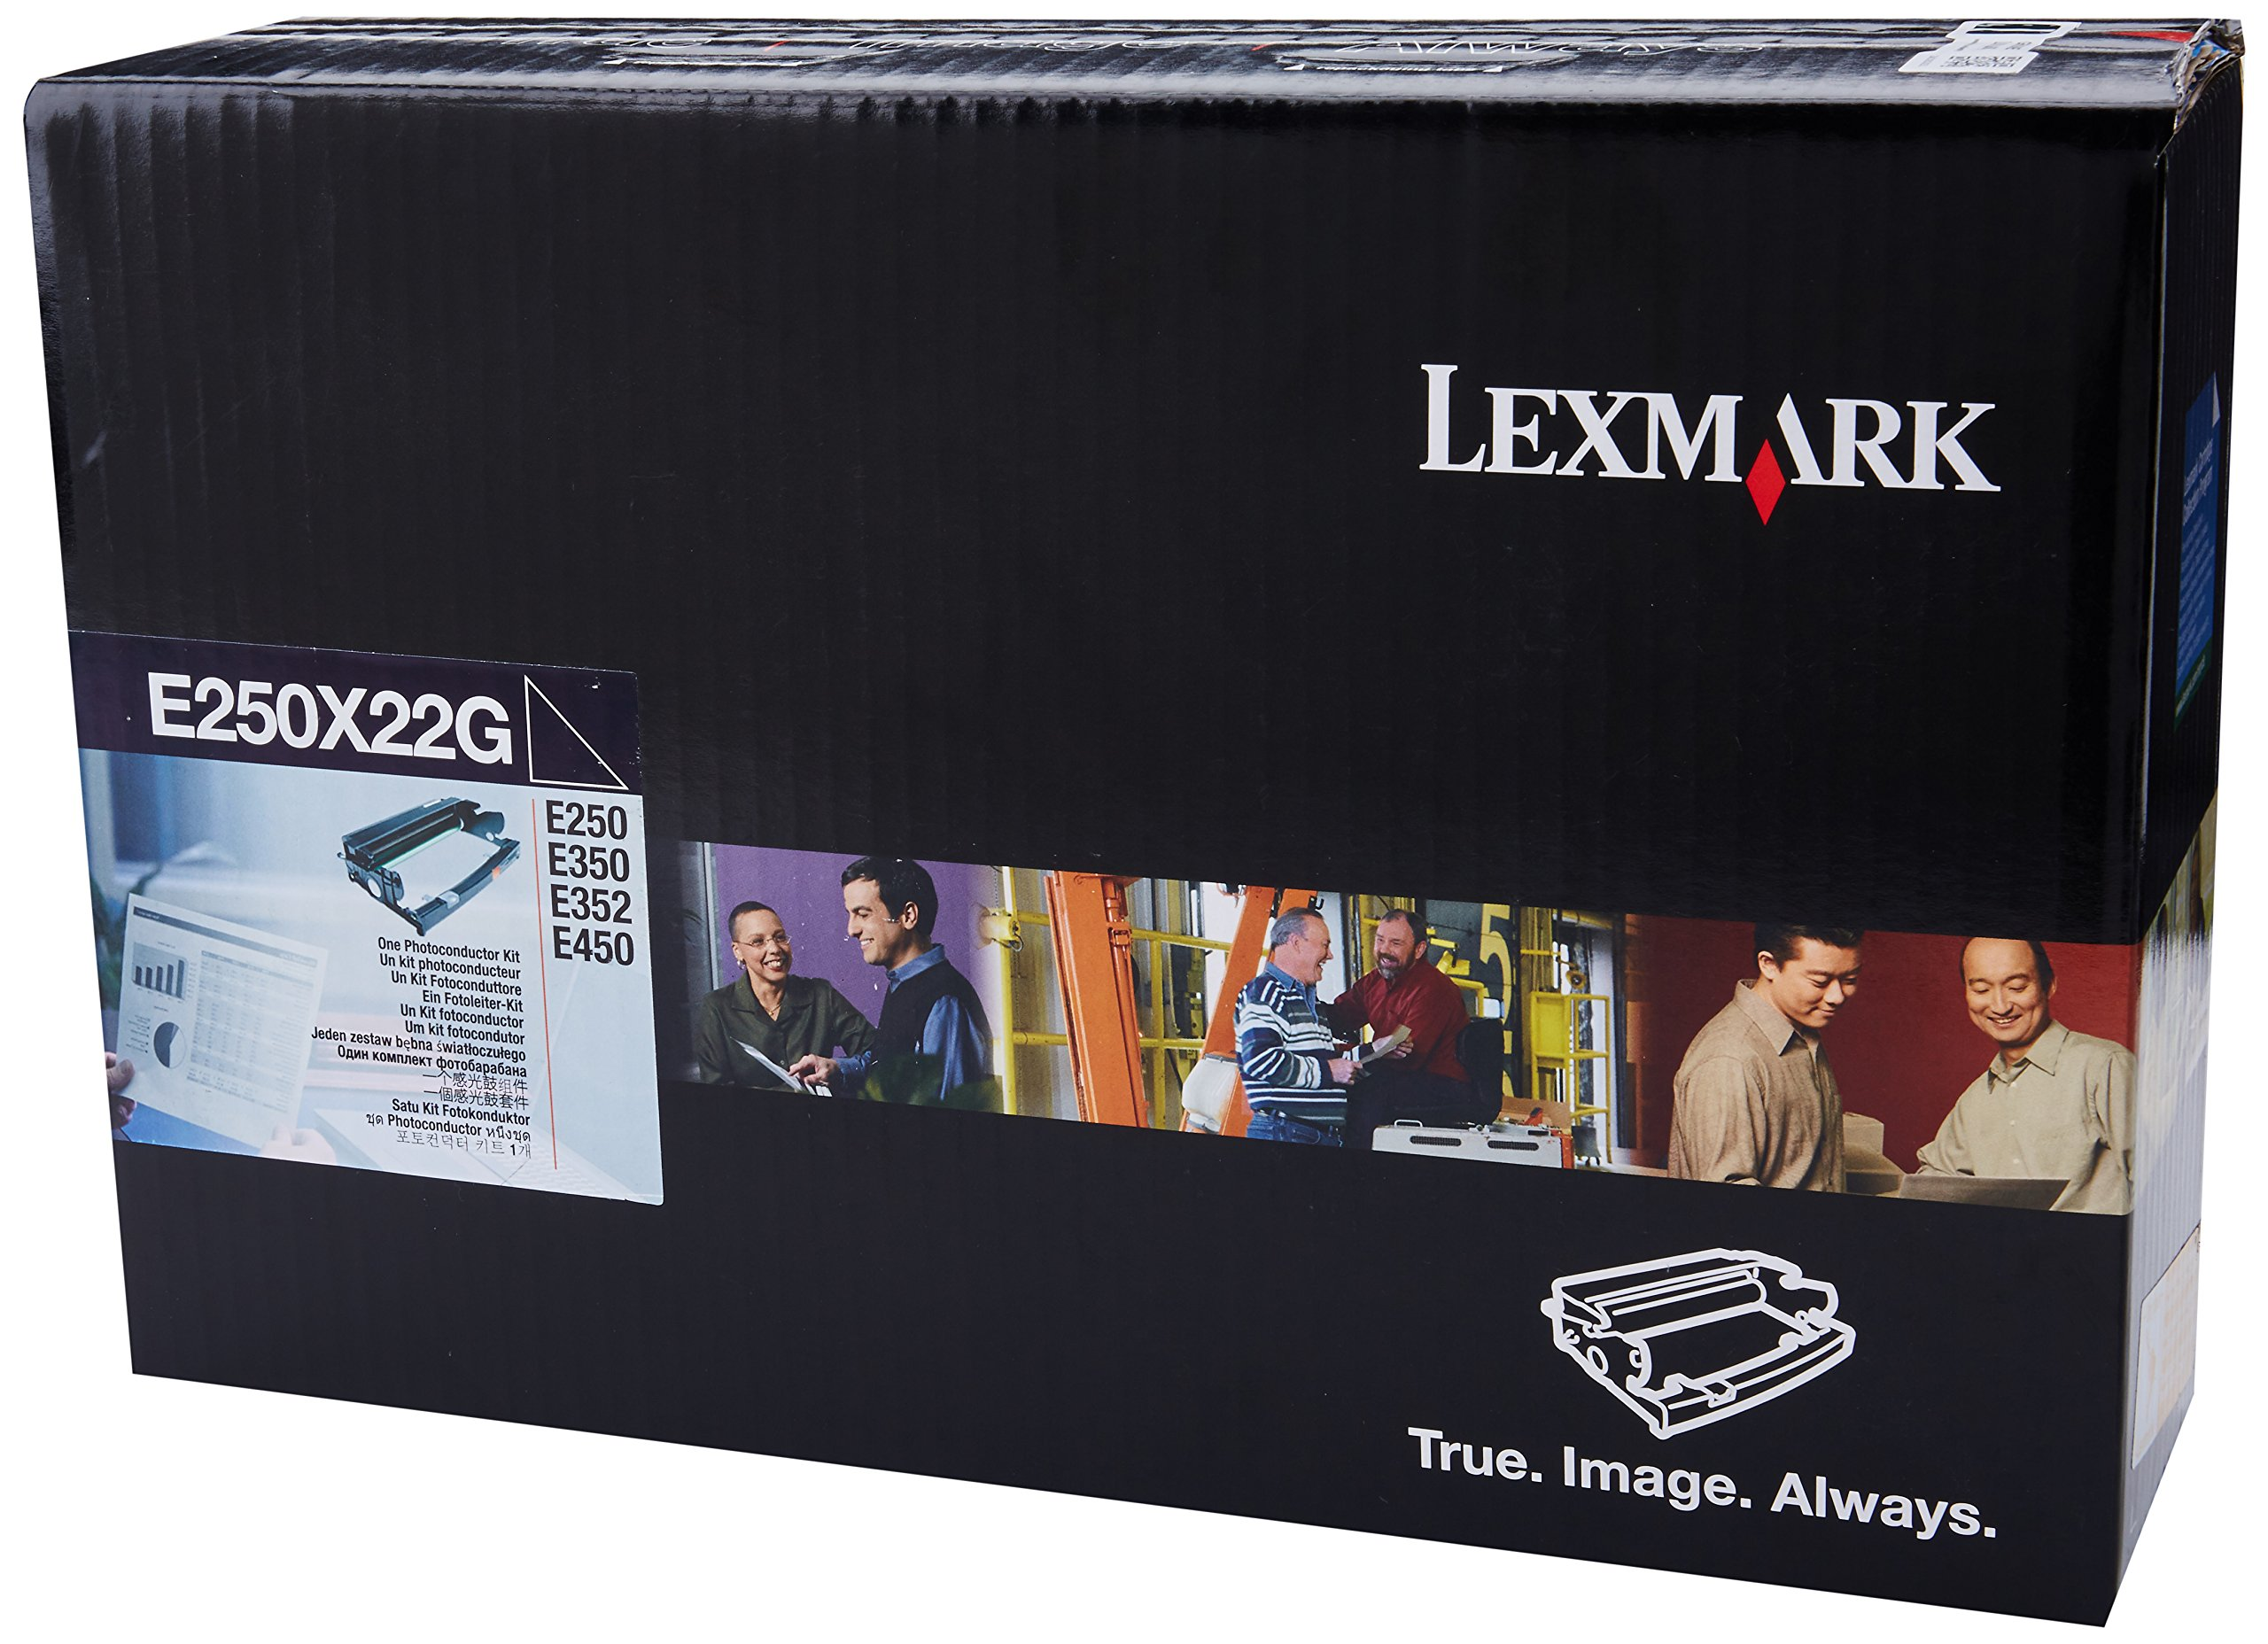 LEXE250X22G - Lexmark Photoconductor Kit For E250, E350, E352 and E450 Printers